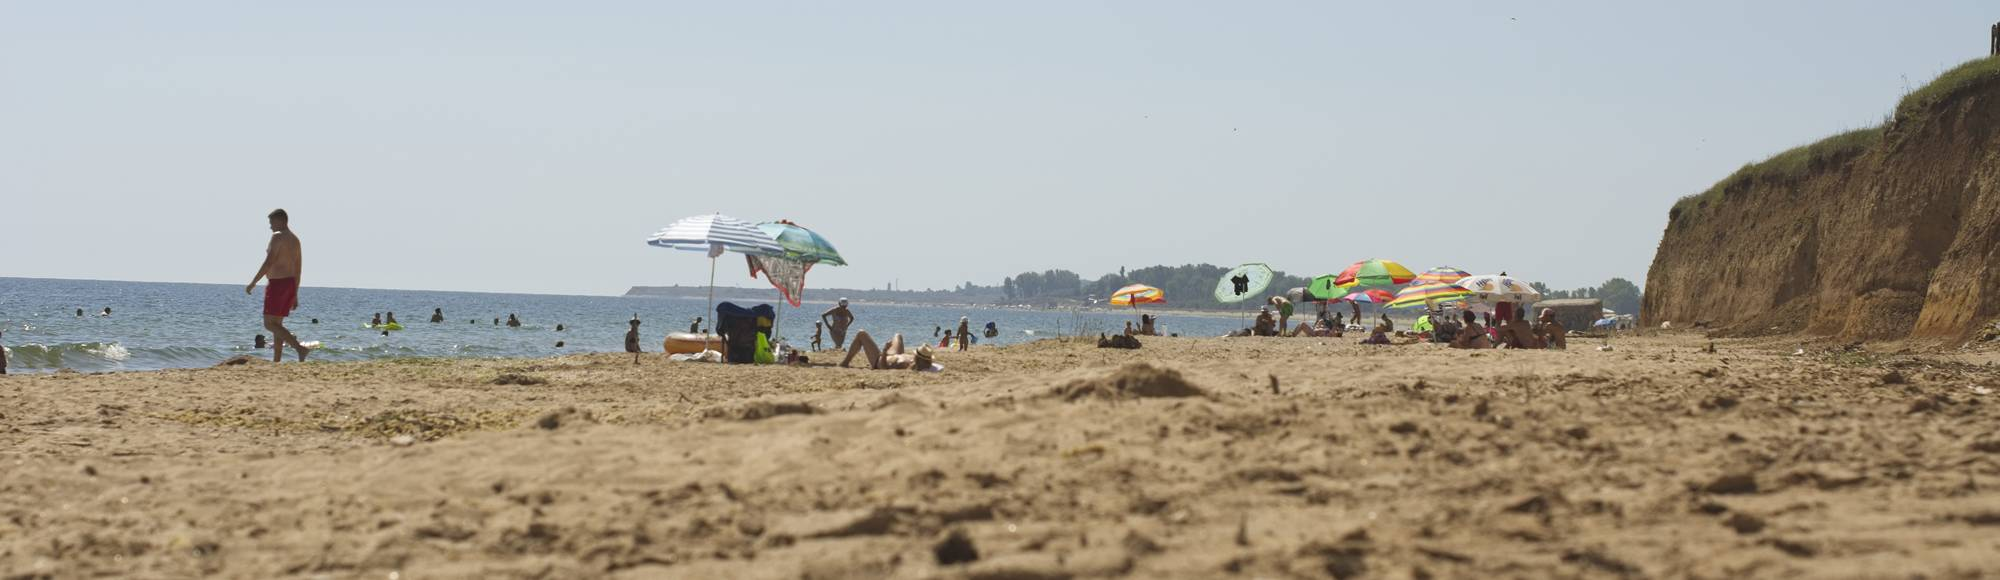 Nudism in Poland. Nudist beaches in Poland